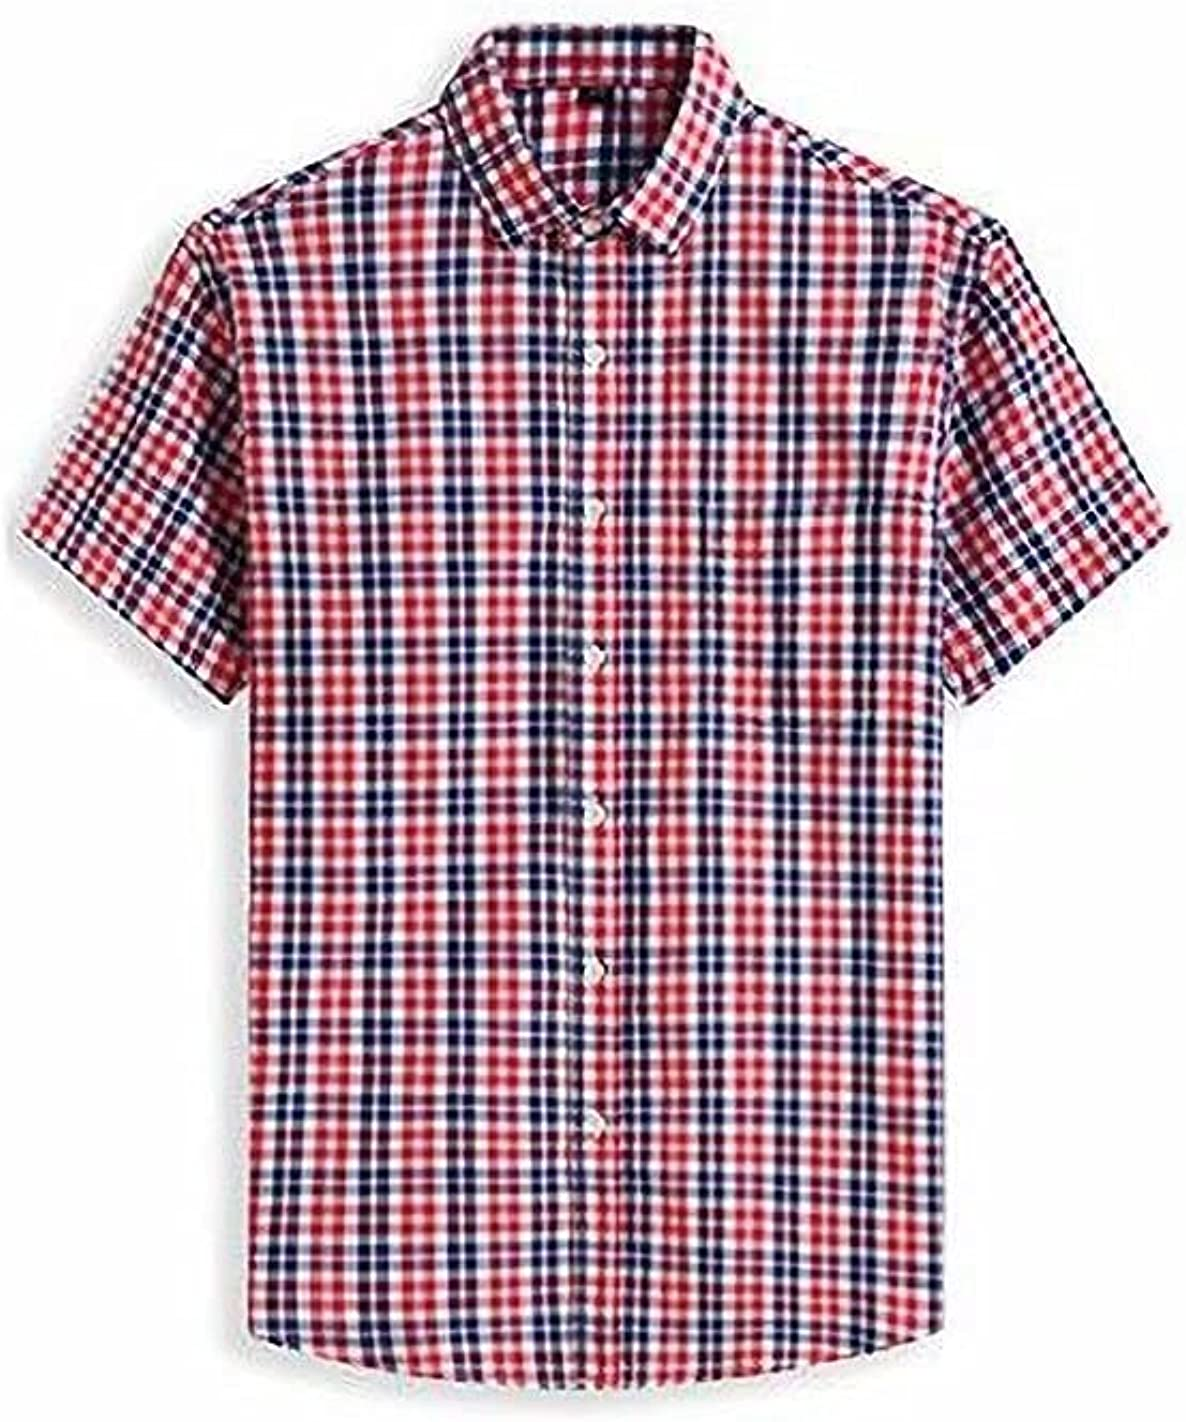 Jcoze Men's Relaxed Fit Casual Checkered Super Size 100% Cotton Short-Sleeve Shirt